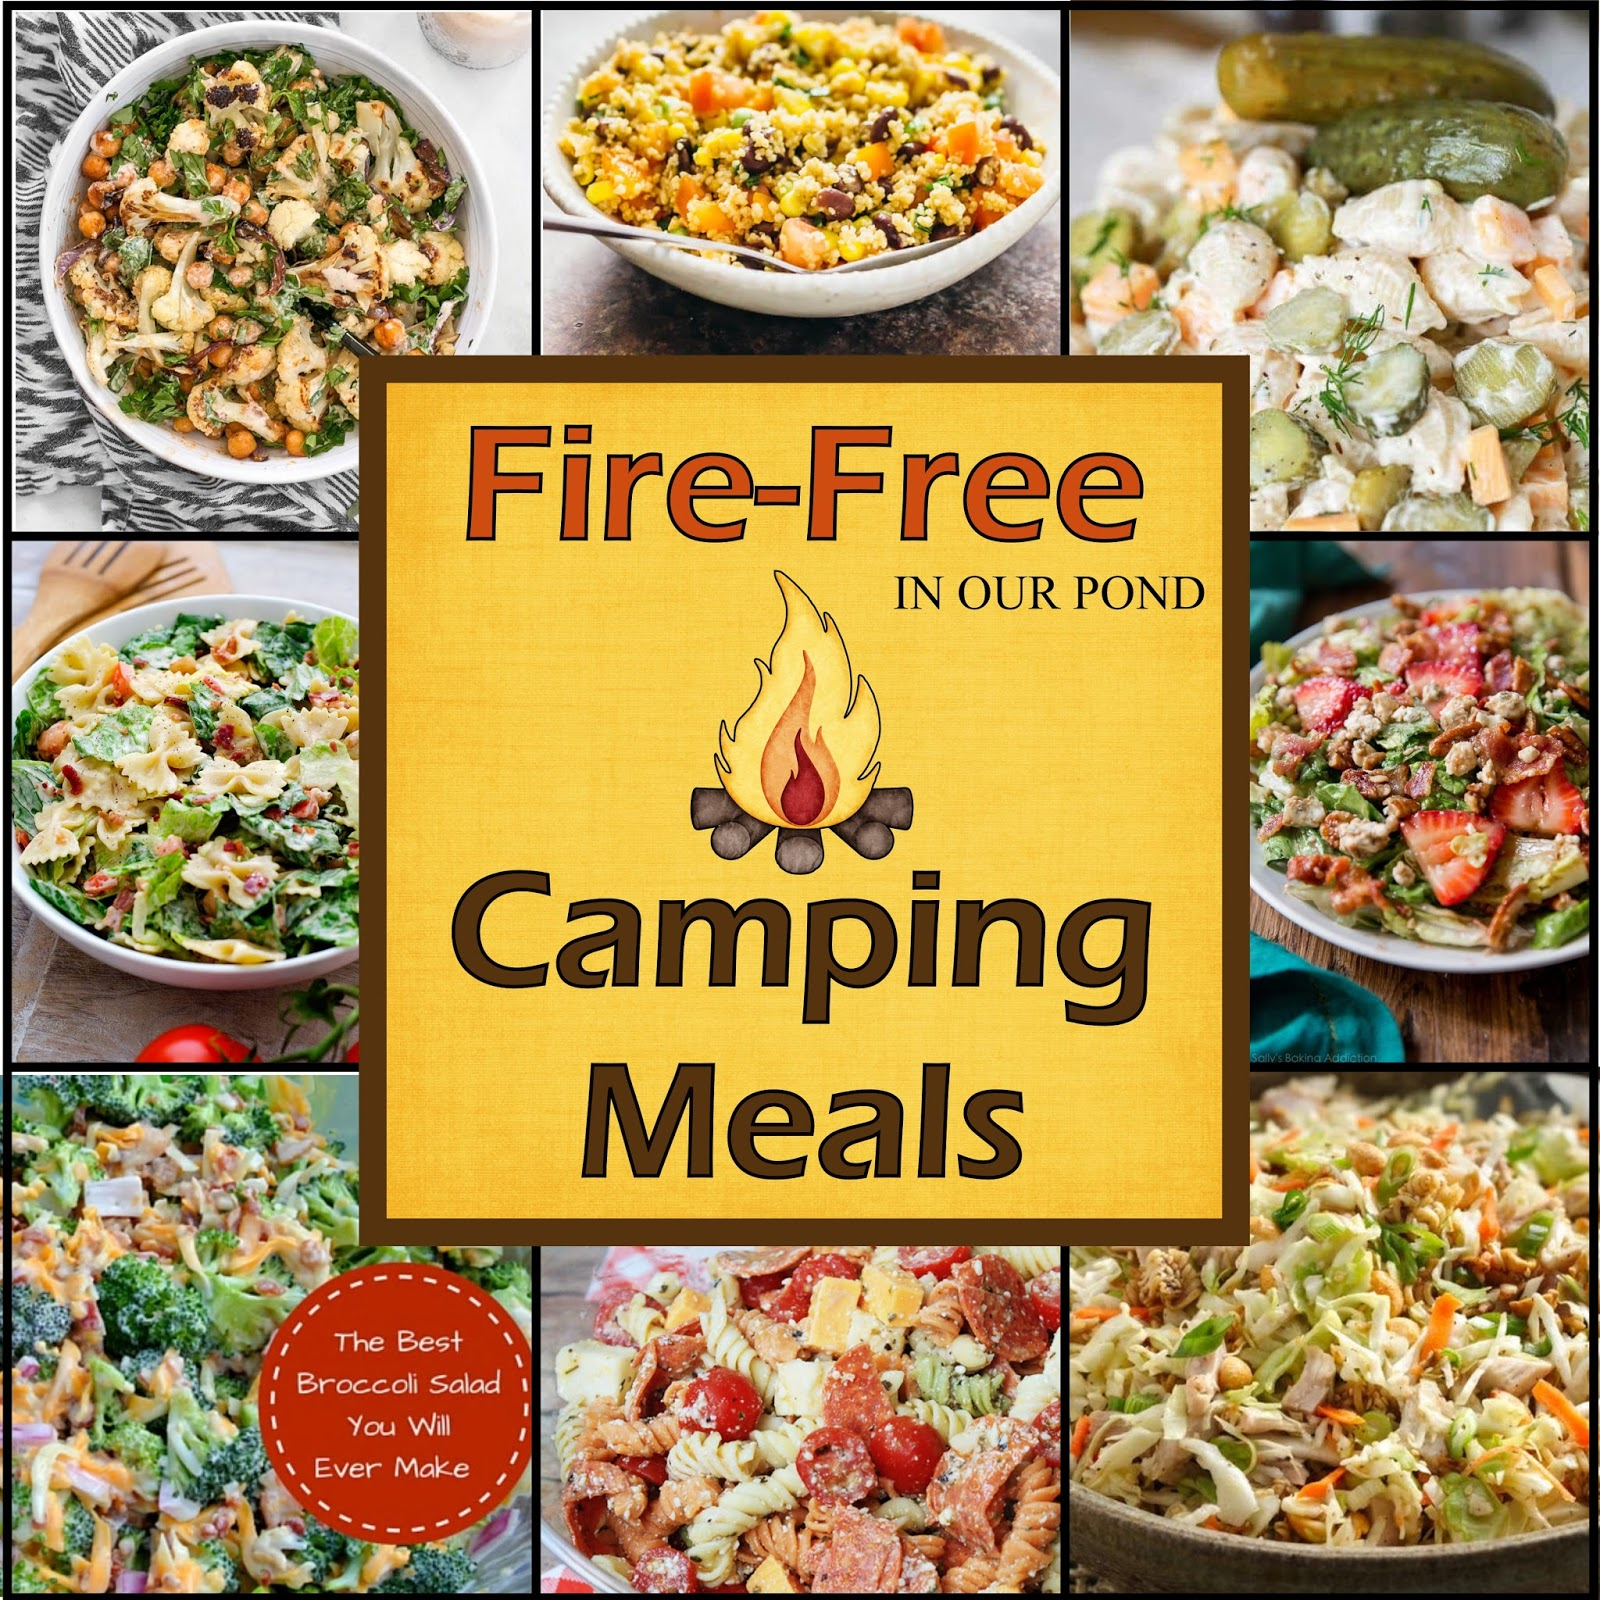 20 Make Ahead Camping Recipes For Easy Meal Planning: 24 Fire-Free Camping Meals